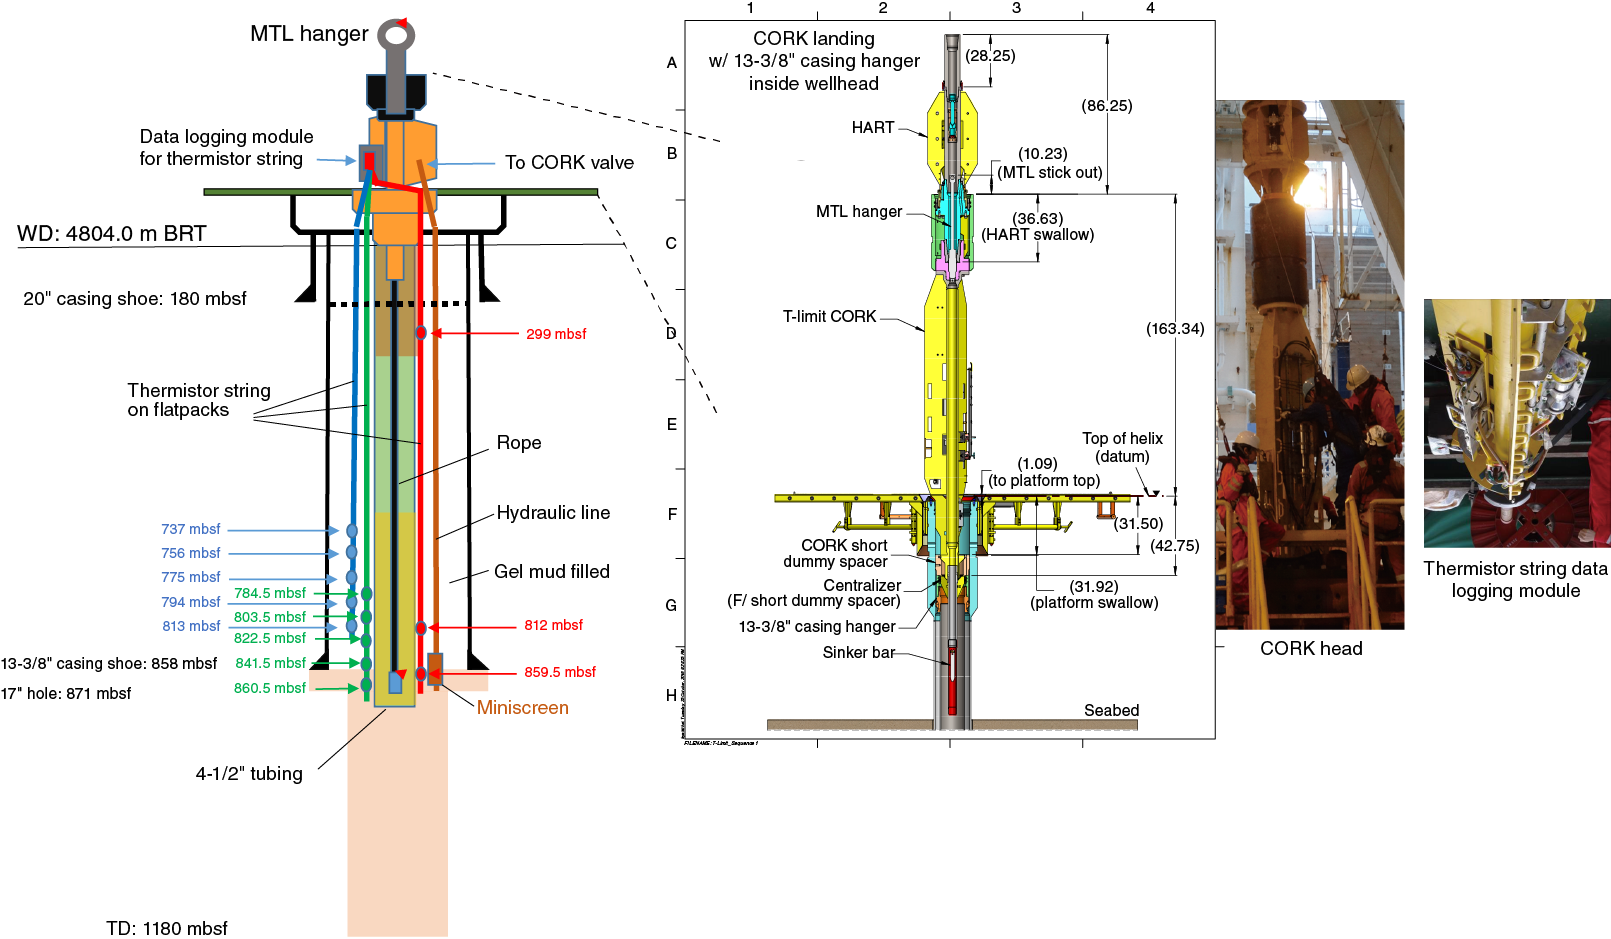 Iodp Publications Volume 370 Expedition Reports Bulletin Board Service Motorized Grain Mill Wiring Question Help Tto And Cork System Configuration